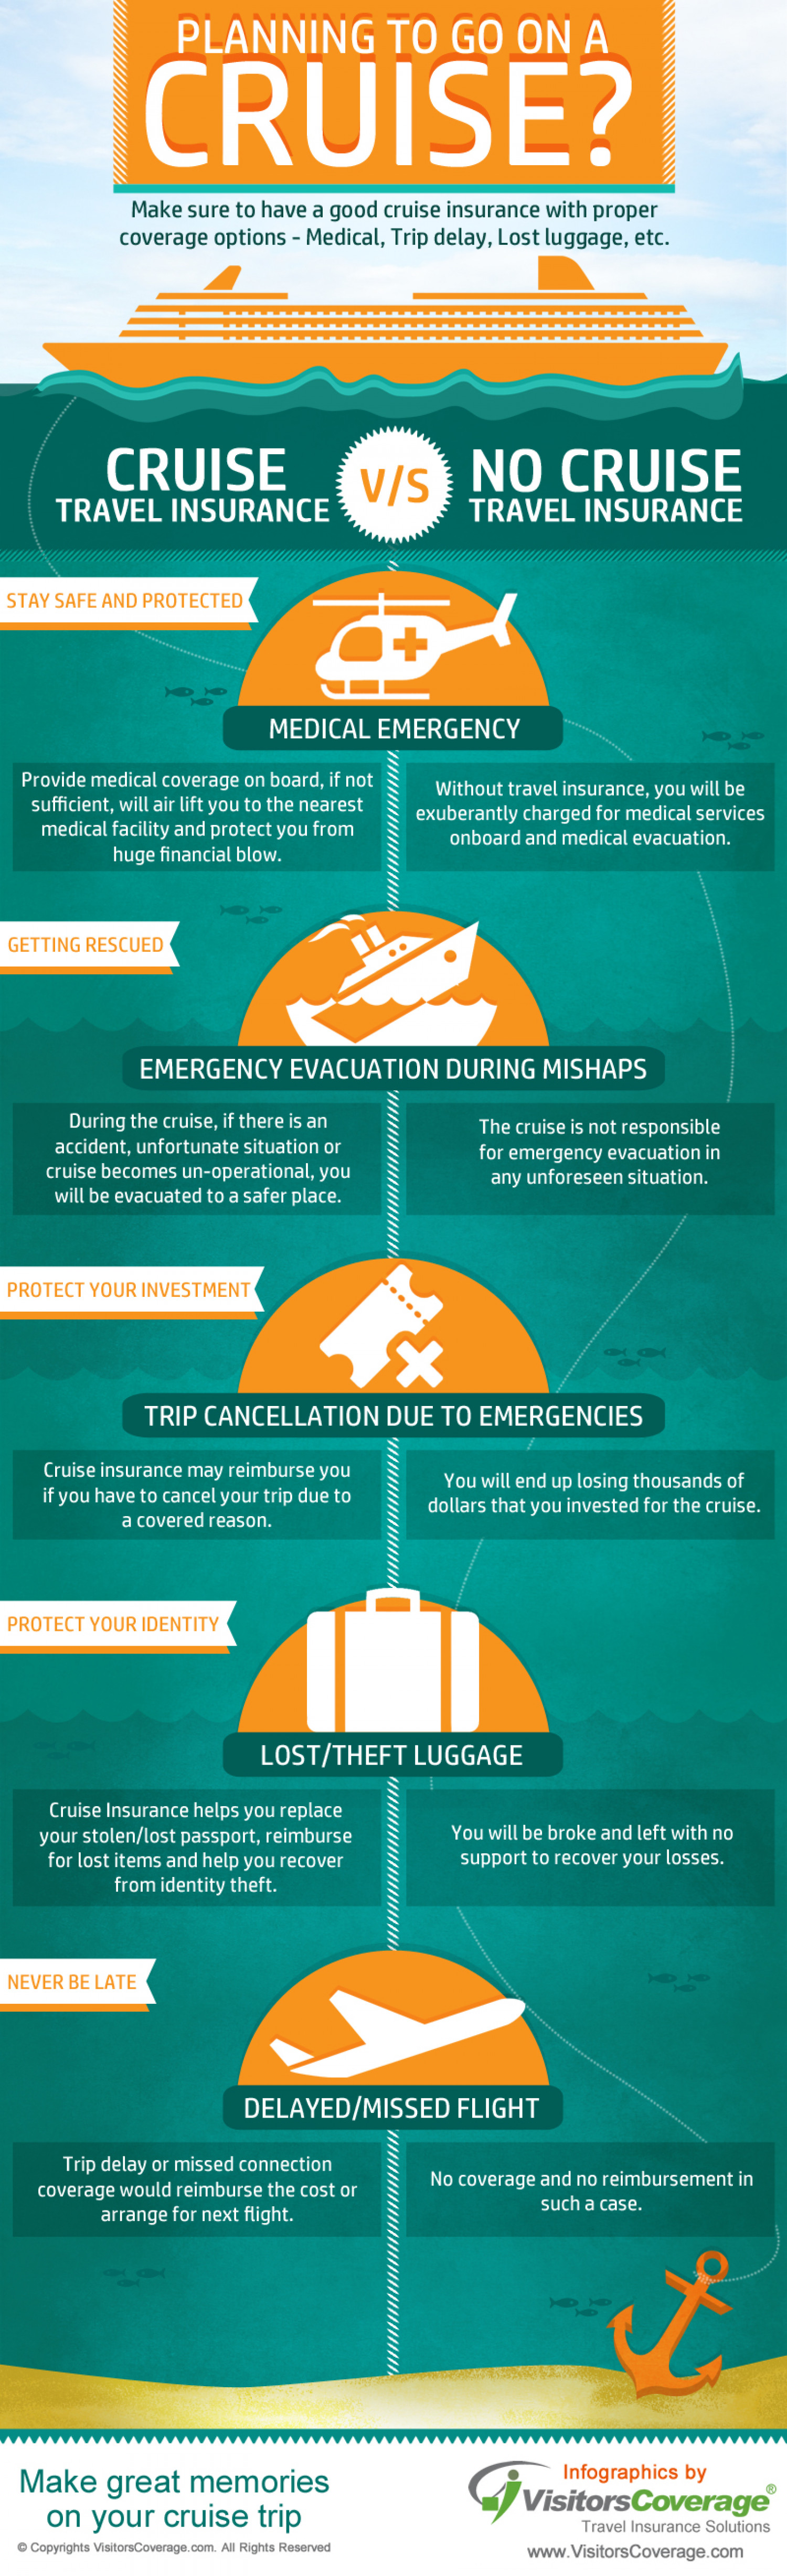 Planning to go on a Cruise? Infographic